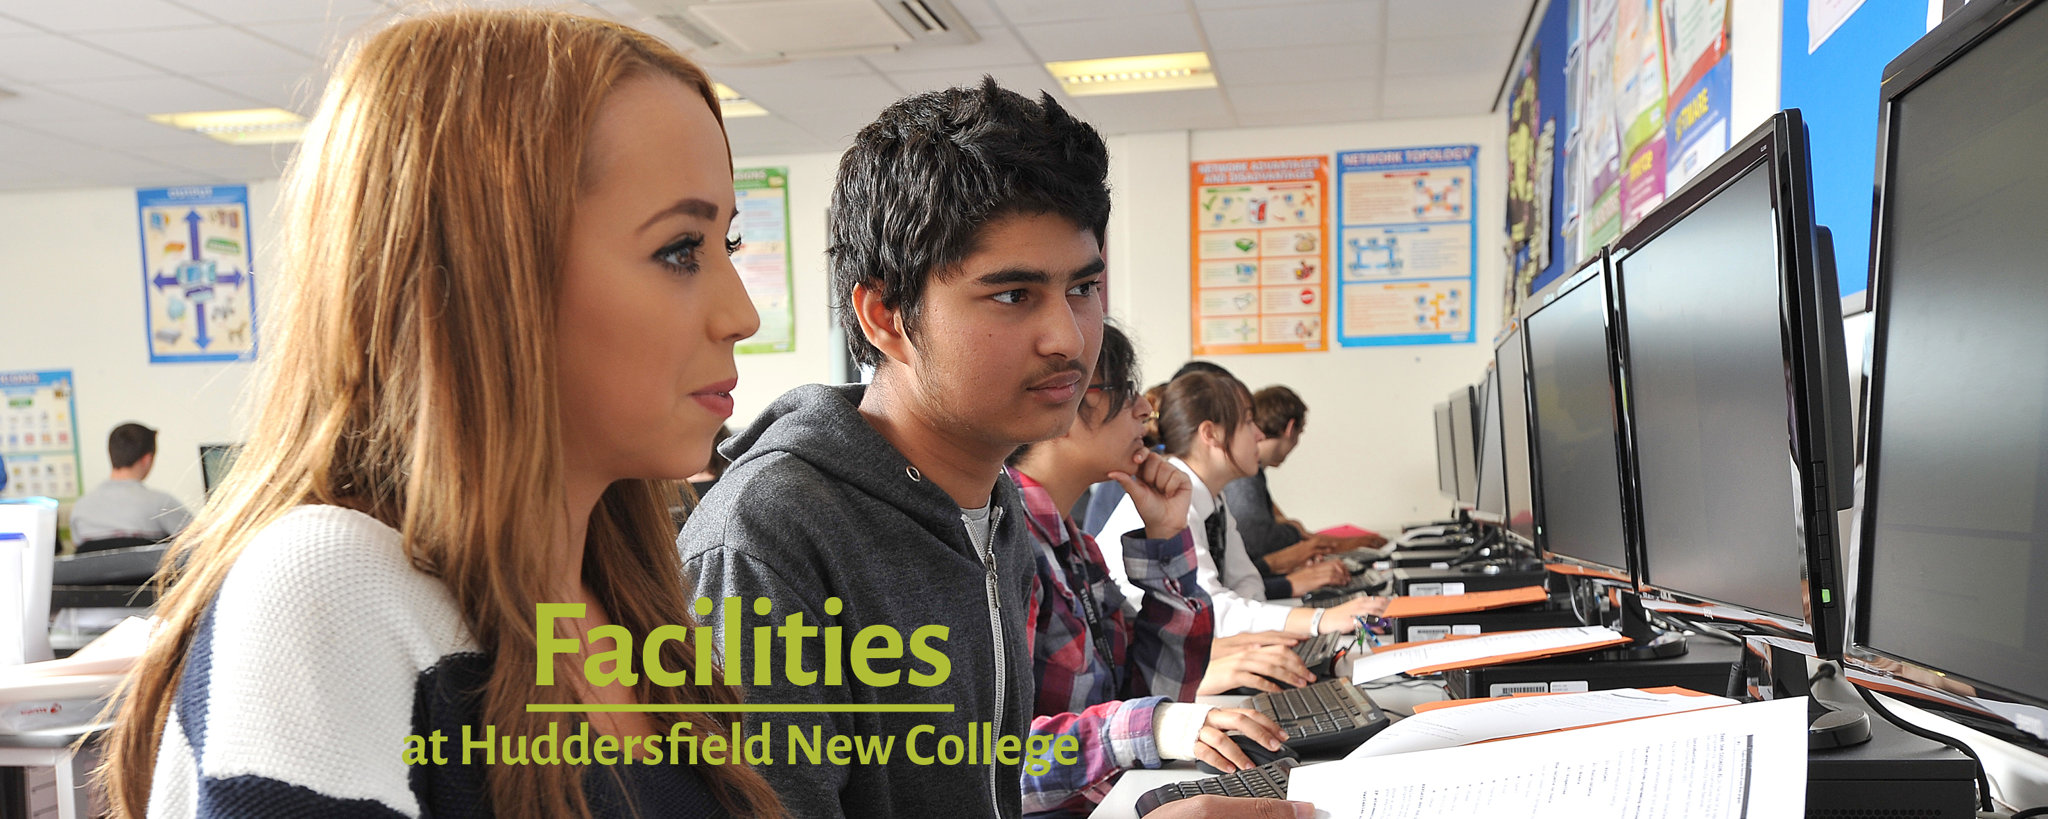 A picture of students using the College's facilities